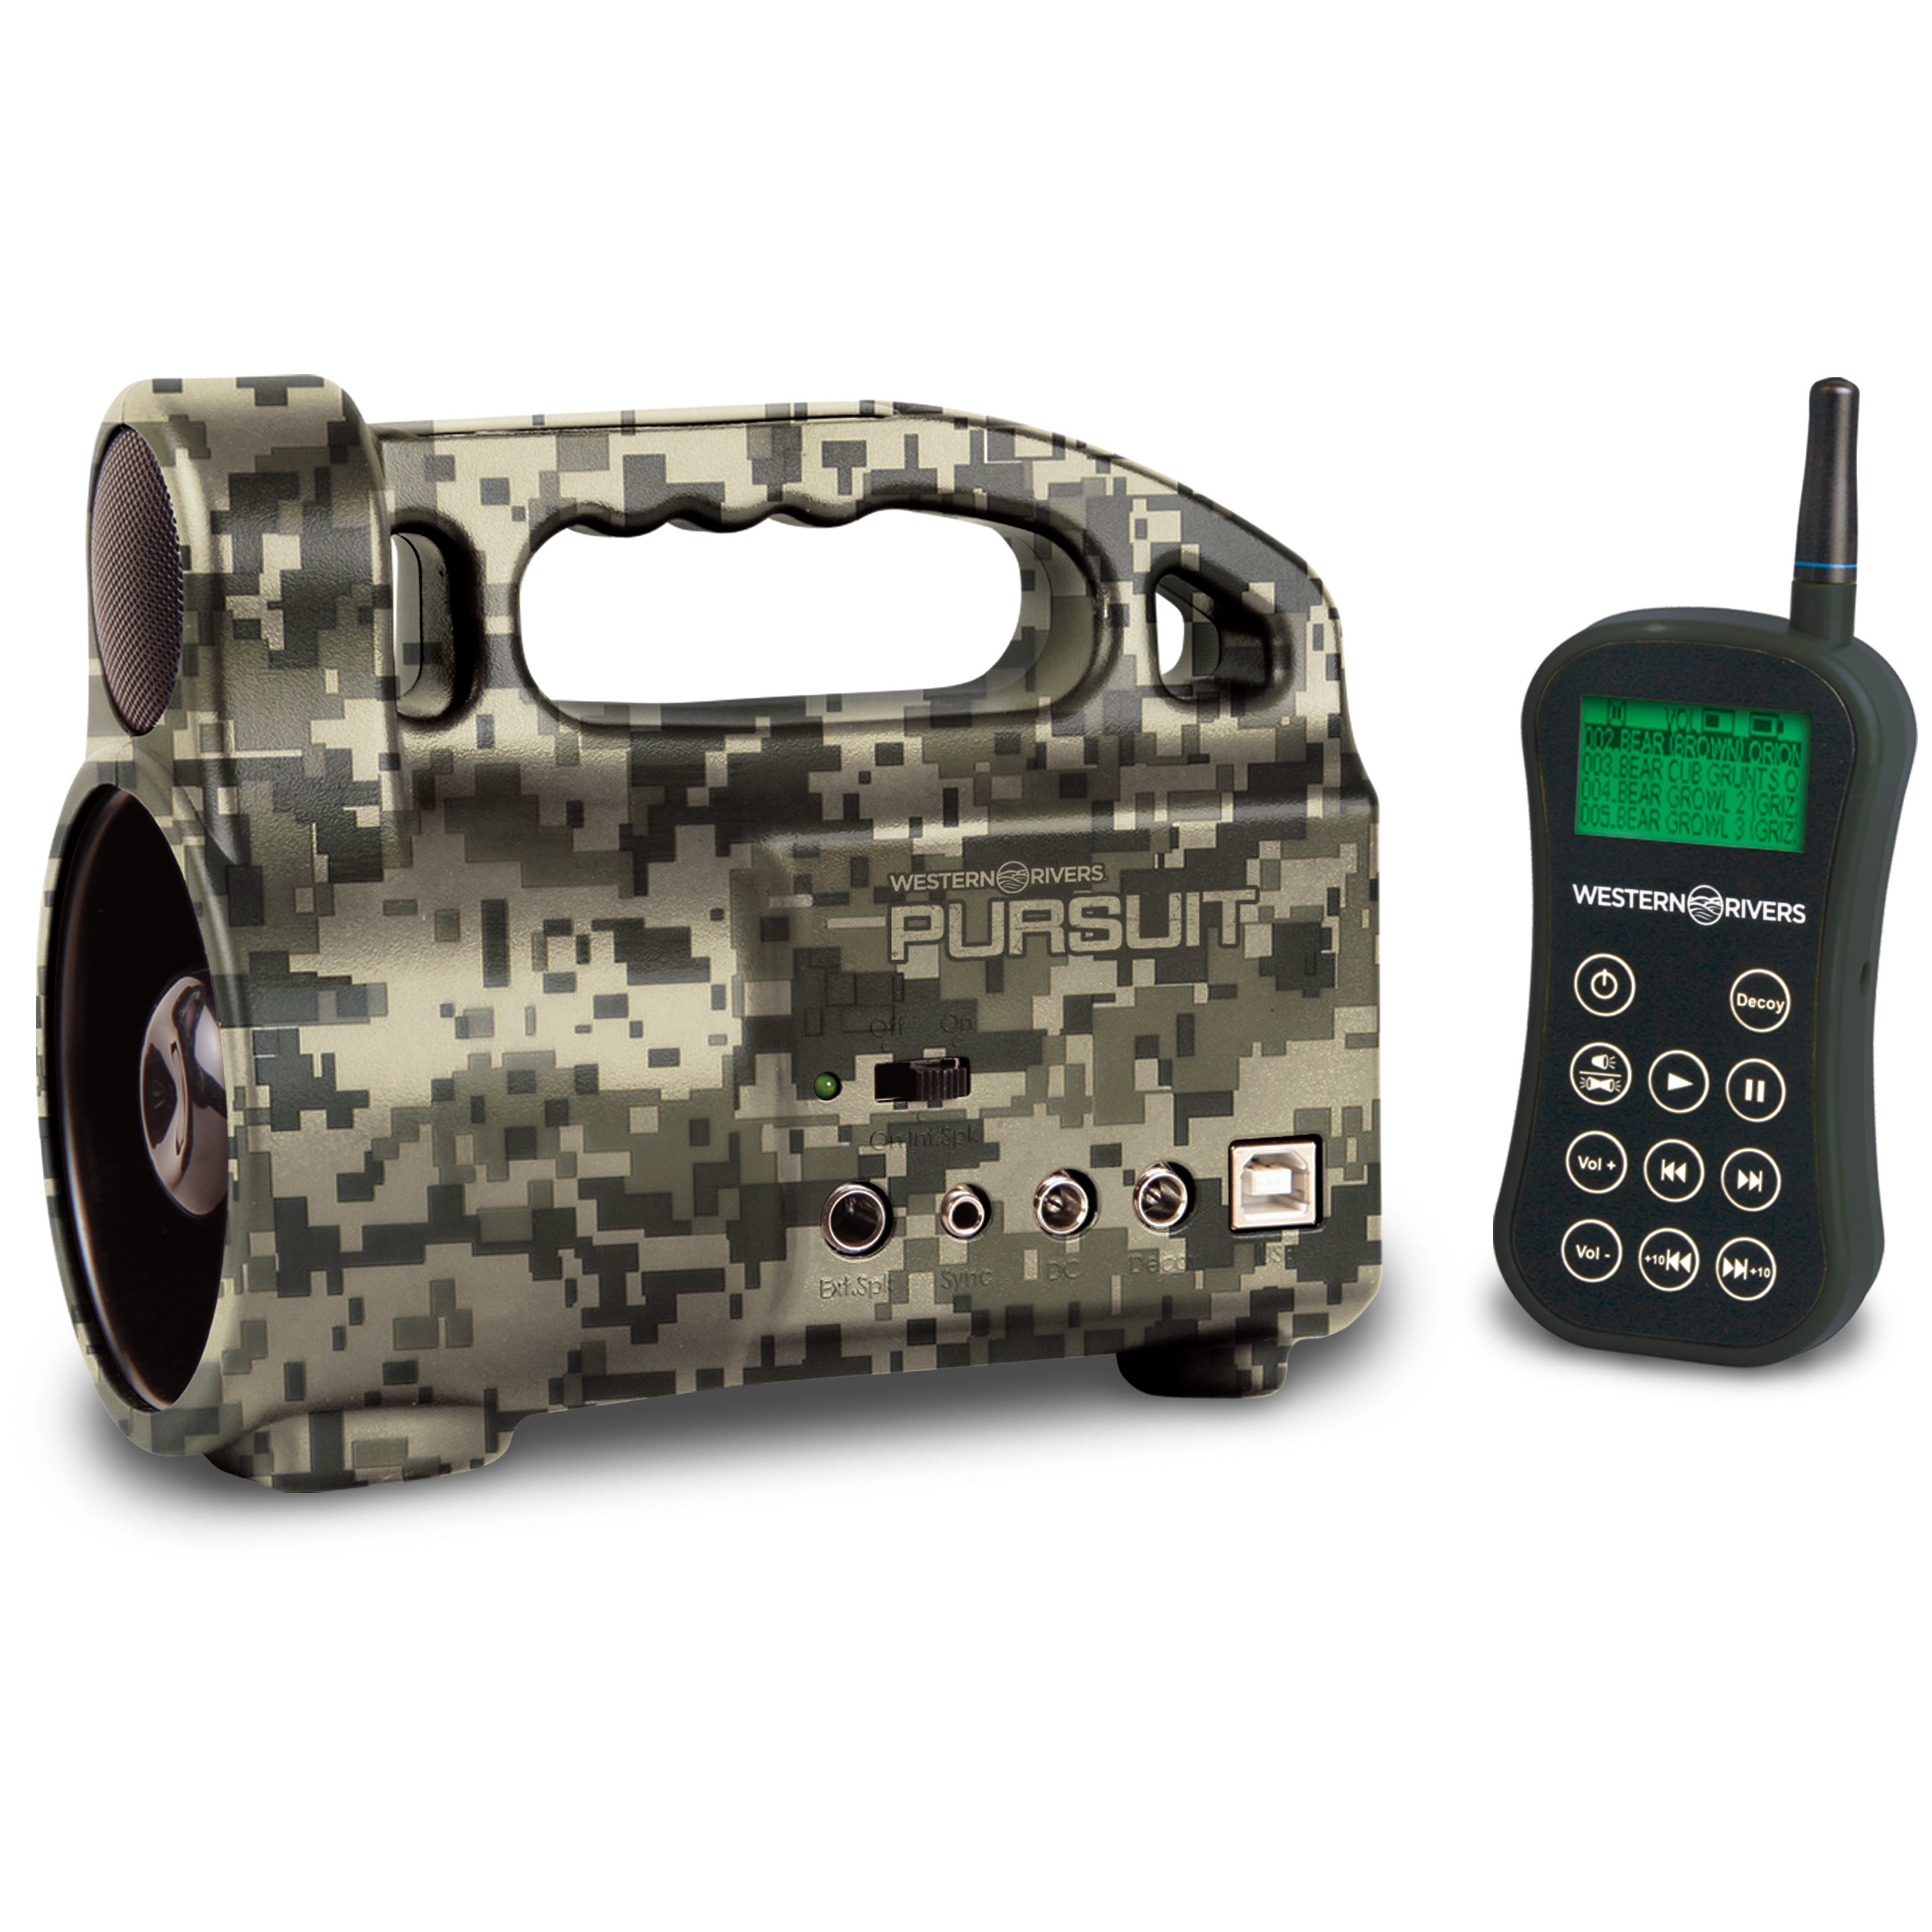 Western River Pursuit Caller. SAVE BIG! 300 sounds right at your fingertips. Sure to prove irresistible to predators. Call them in close with this Pursuit Caller. The LCD remote makes it so easy to use, with everything you need right at your fingertips! Make the call: 300 high-quality ORION Sounds Intensified volume for greater range Dual speakers External speaker jack on the side of the unit to add even more volume with your own speakers Ergonomically designed LCD remote control lets you turn the unit or remote decoy on or off, select a speaker, play and pause the caller, select/scan sounds, control the volume or pause the sound Remote's LCD display shows the title of the current sound, volume level, speaker selection, battery level, if the decoy is on or off position and more Weighs only 28 ozs. Take your hunting to the next level with this Pursuit Caller. - $149.99